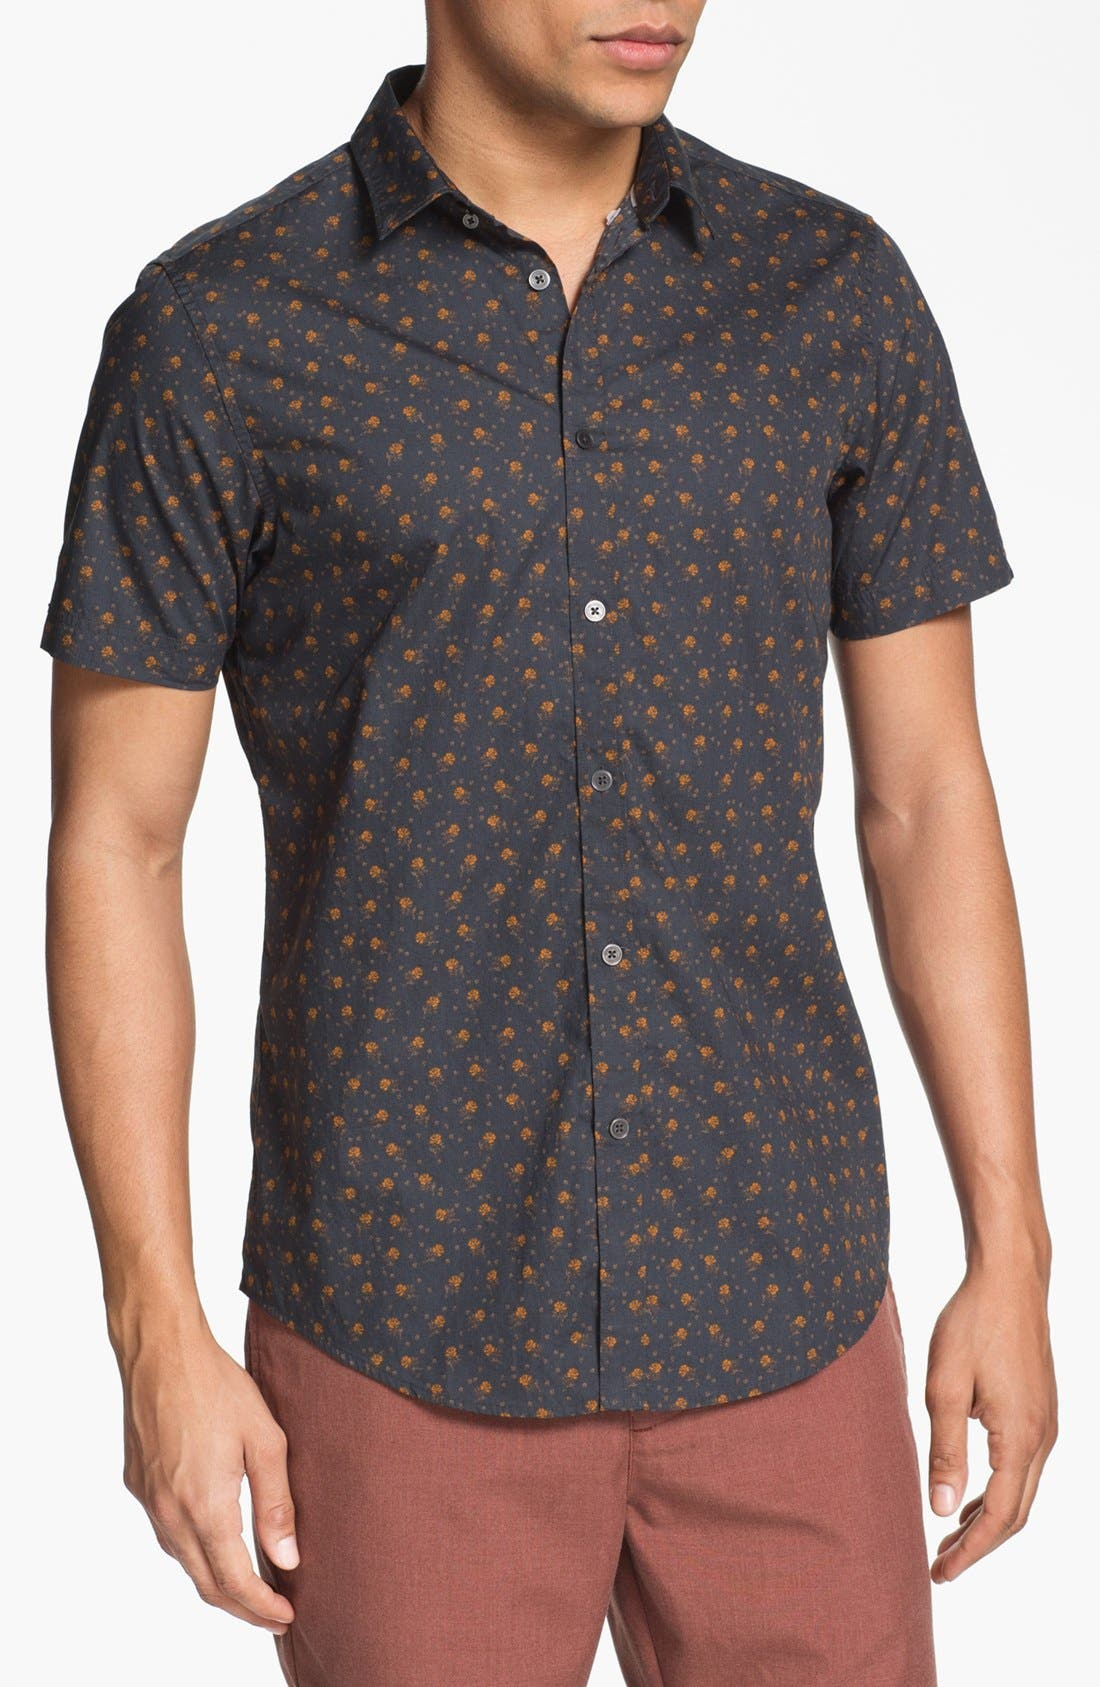 Alternate Image 1 Selected - Ben Sherman Floral Print Woven Shirt